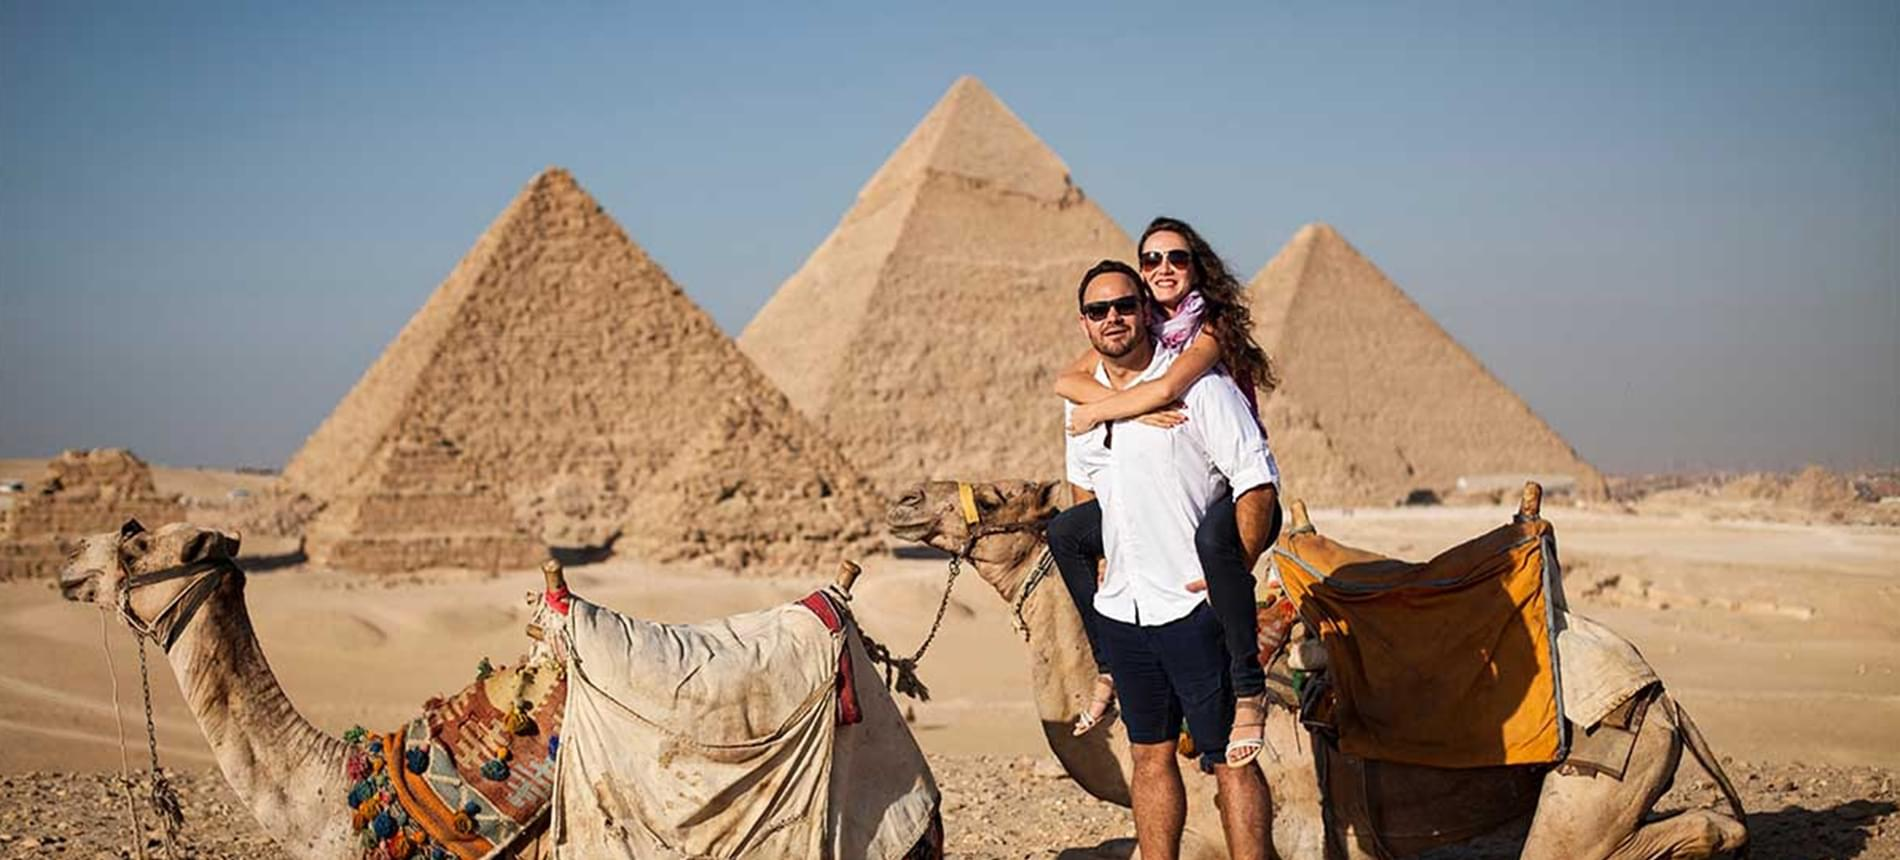 budget tours in egypt